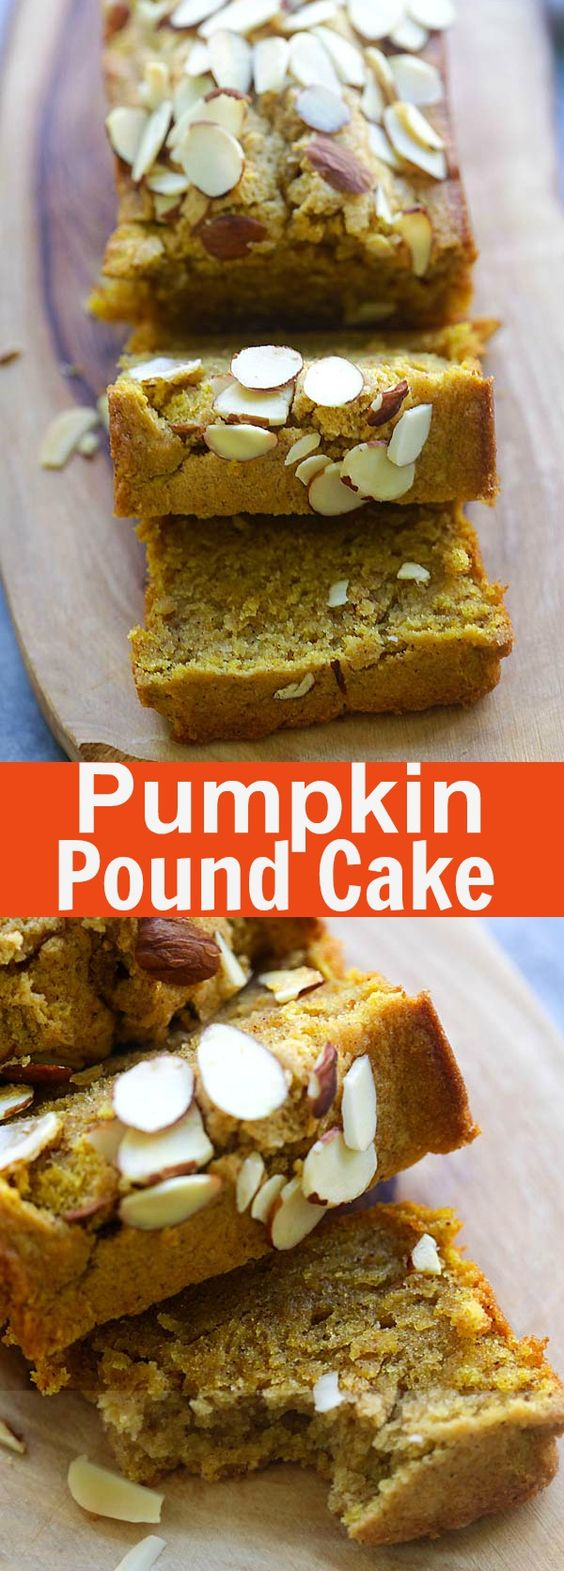 Pumpkin Pound Cake – buttery, moist and amazing pound cake recipe loaded with pumpkin and pumpkin pie spice. So aromatic and delicious | rasamalaysia.com